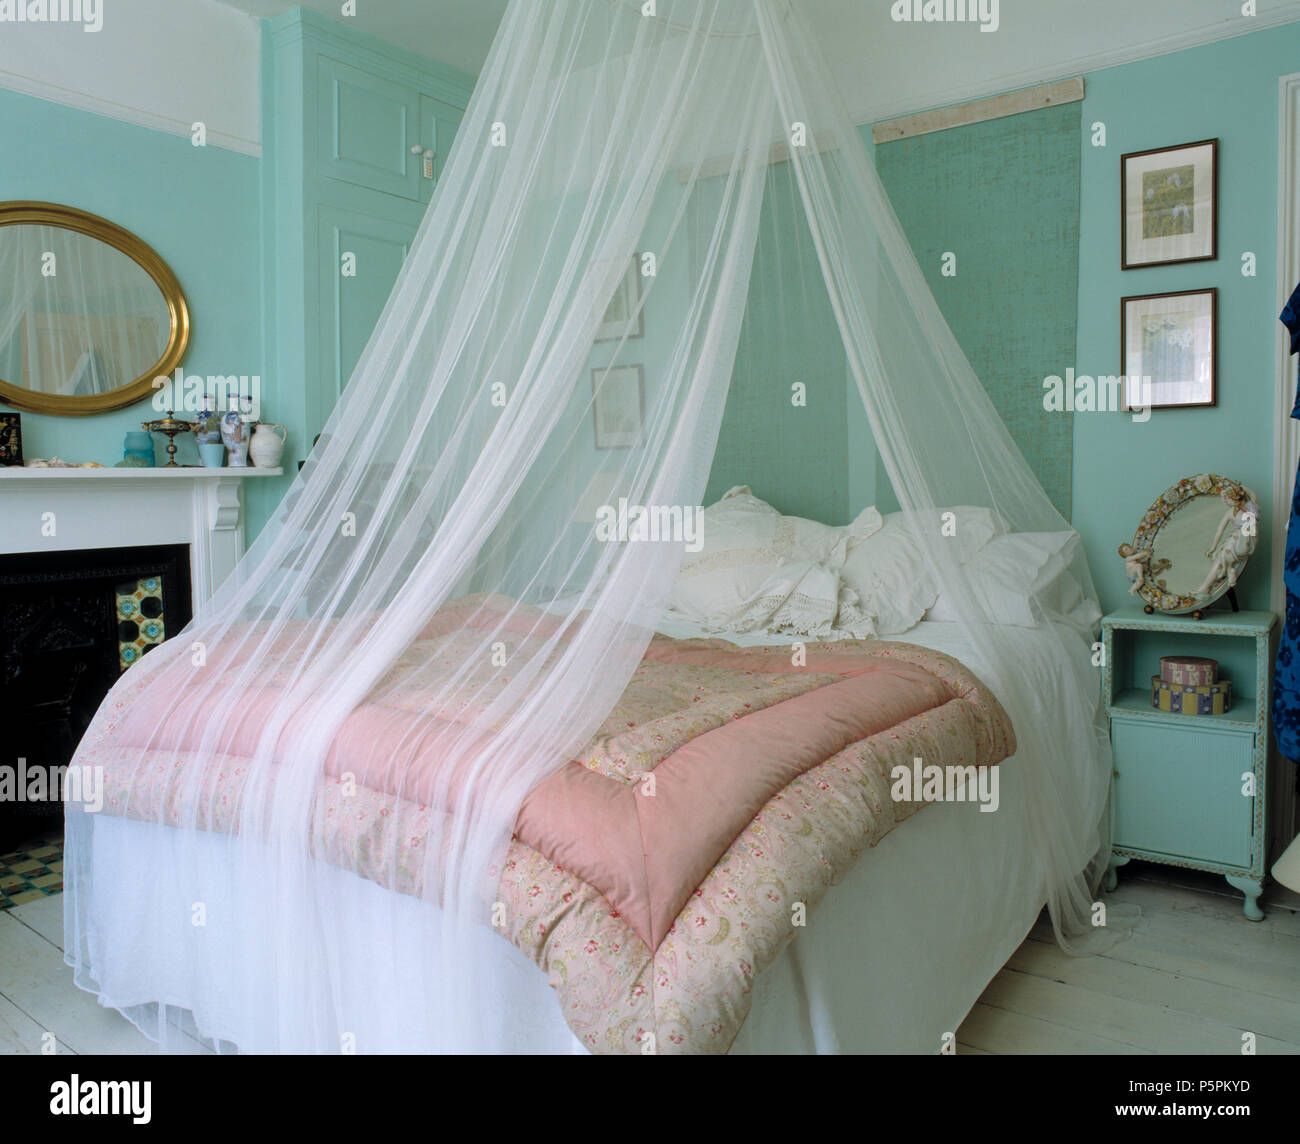 White voile drapes above bed with pink vintage eiderdown and ...